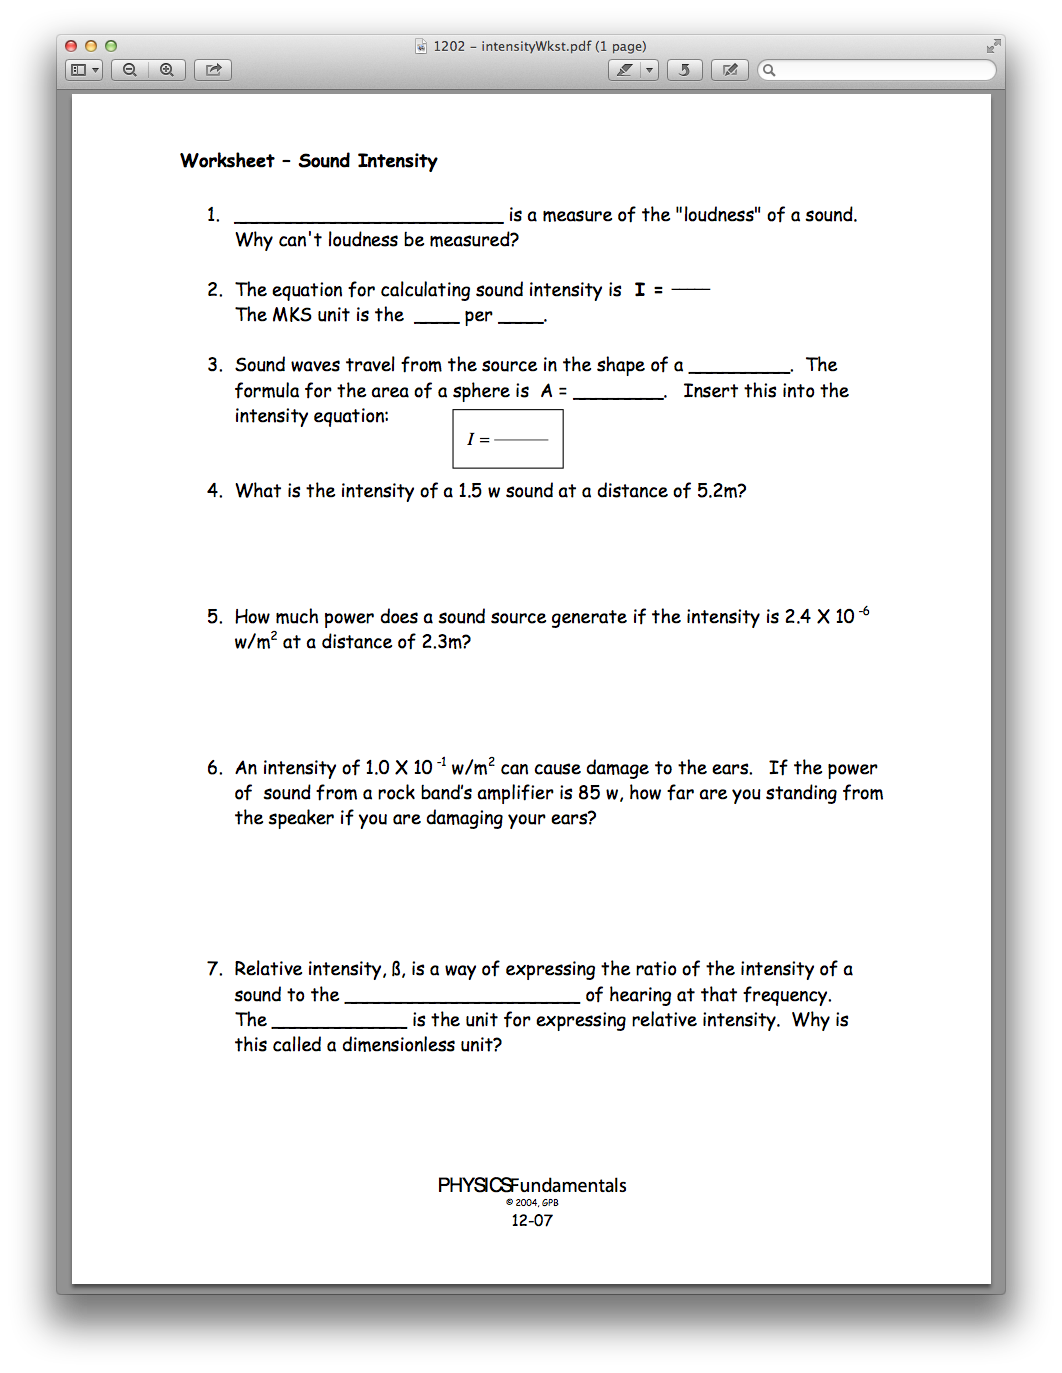 Physics Chapter 12, Lesson 02 - Sound Intensity and